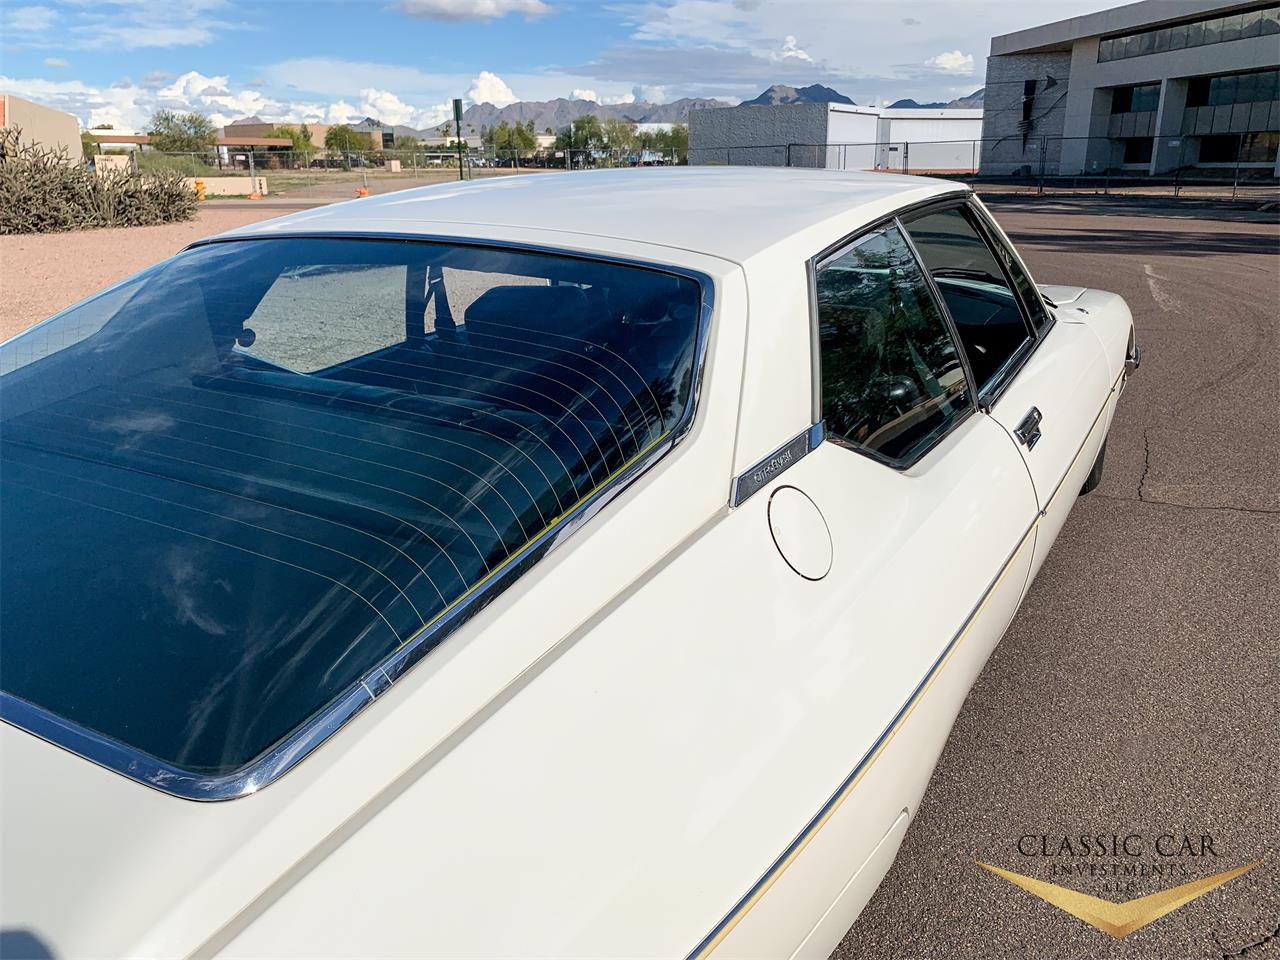 Large Picture of 1972 Citroen SM located in Scottsdale Arizona - $53,500.00 Offered by Classic Car Investments LLC - P667